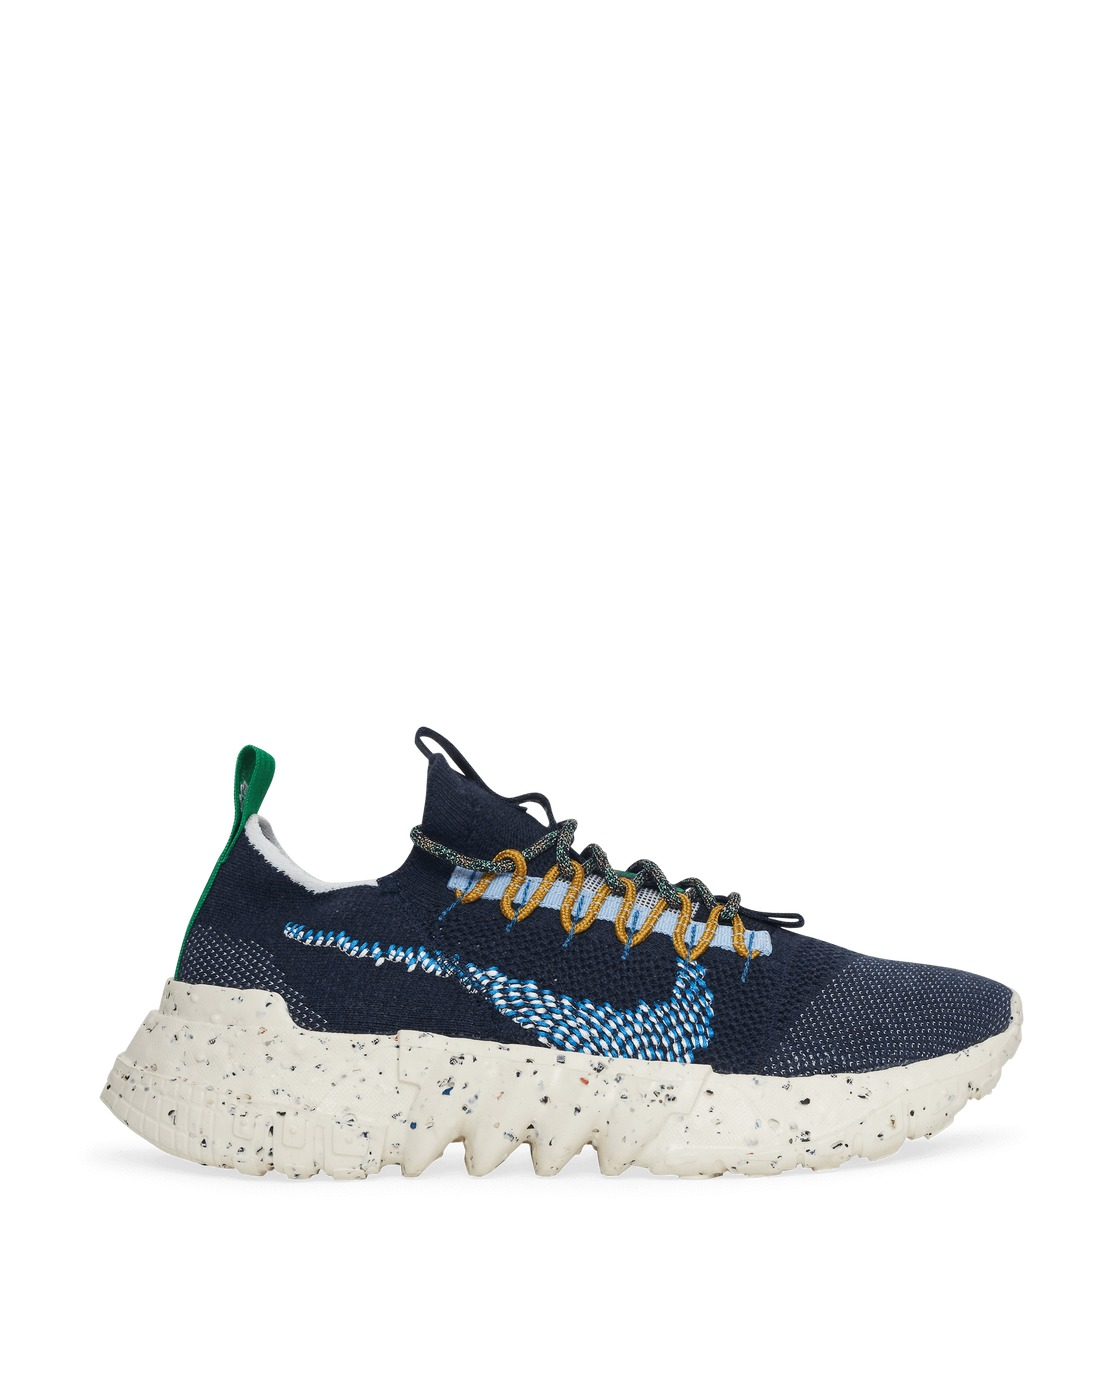 Photo: Nike Space Hippie 01 Sneakers Obsidian/Signal Blue